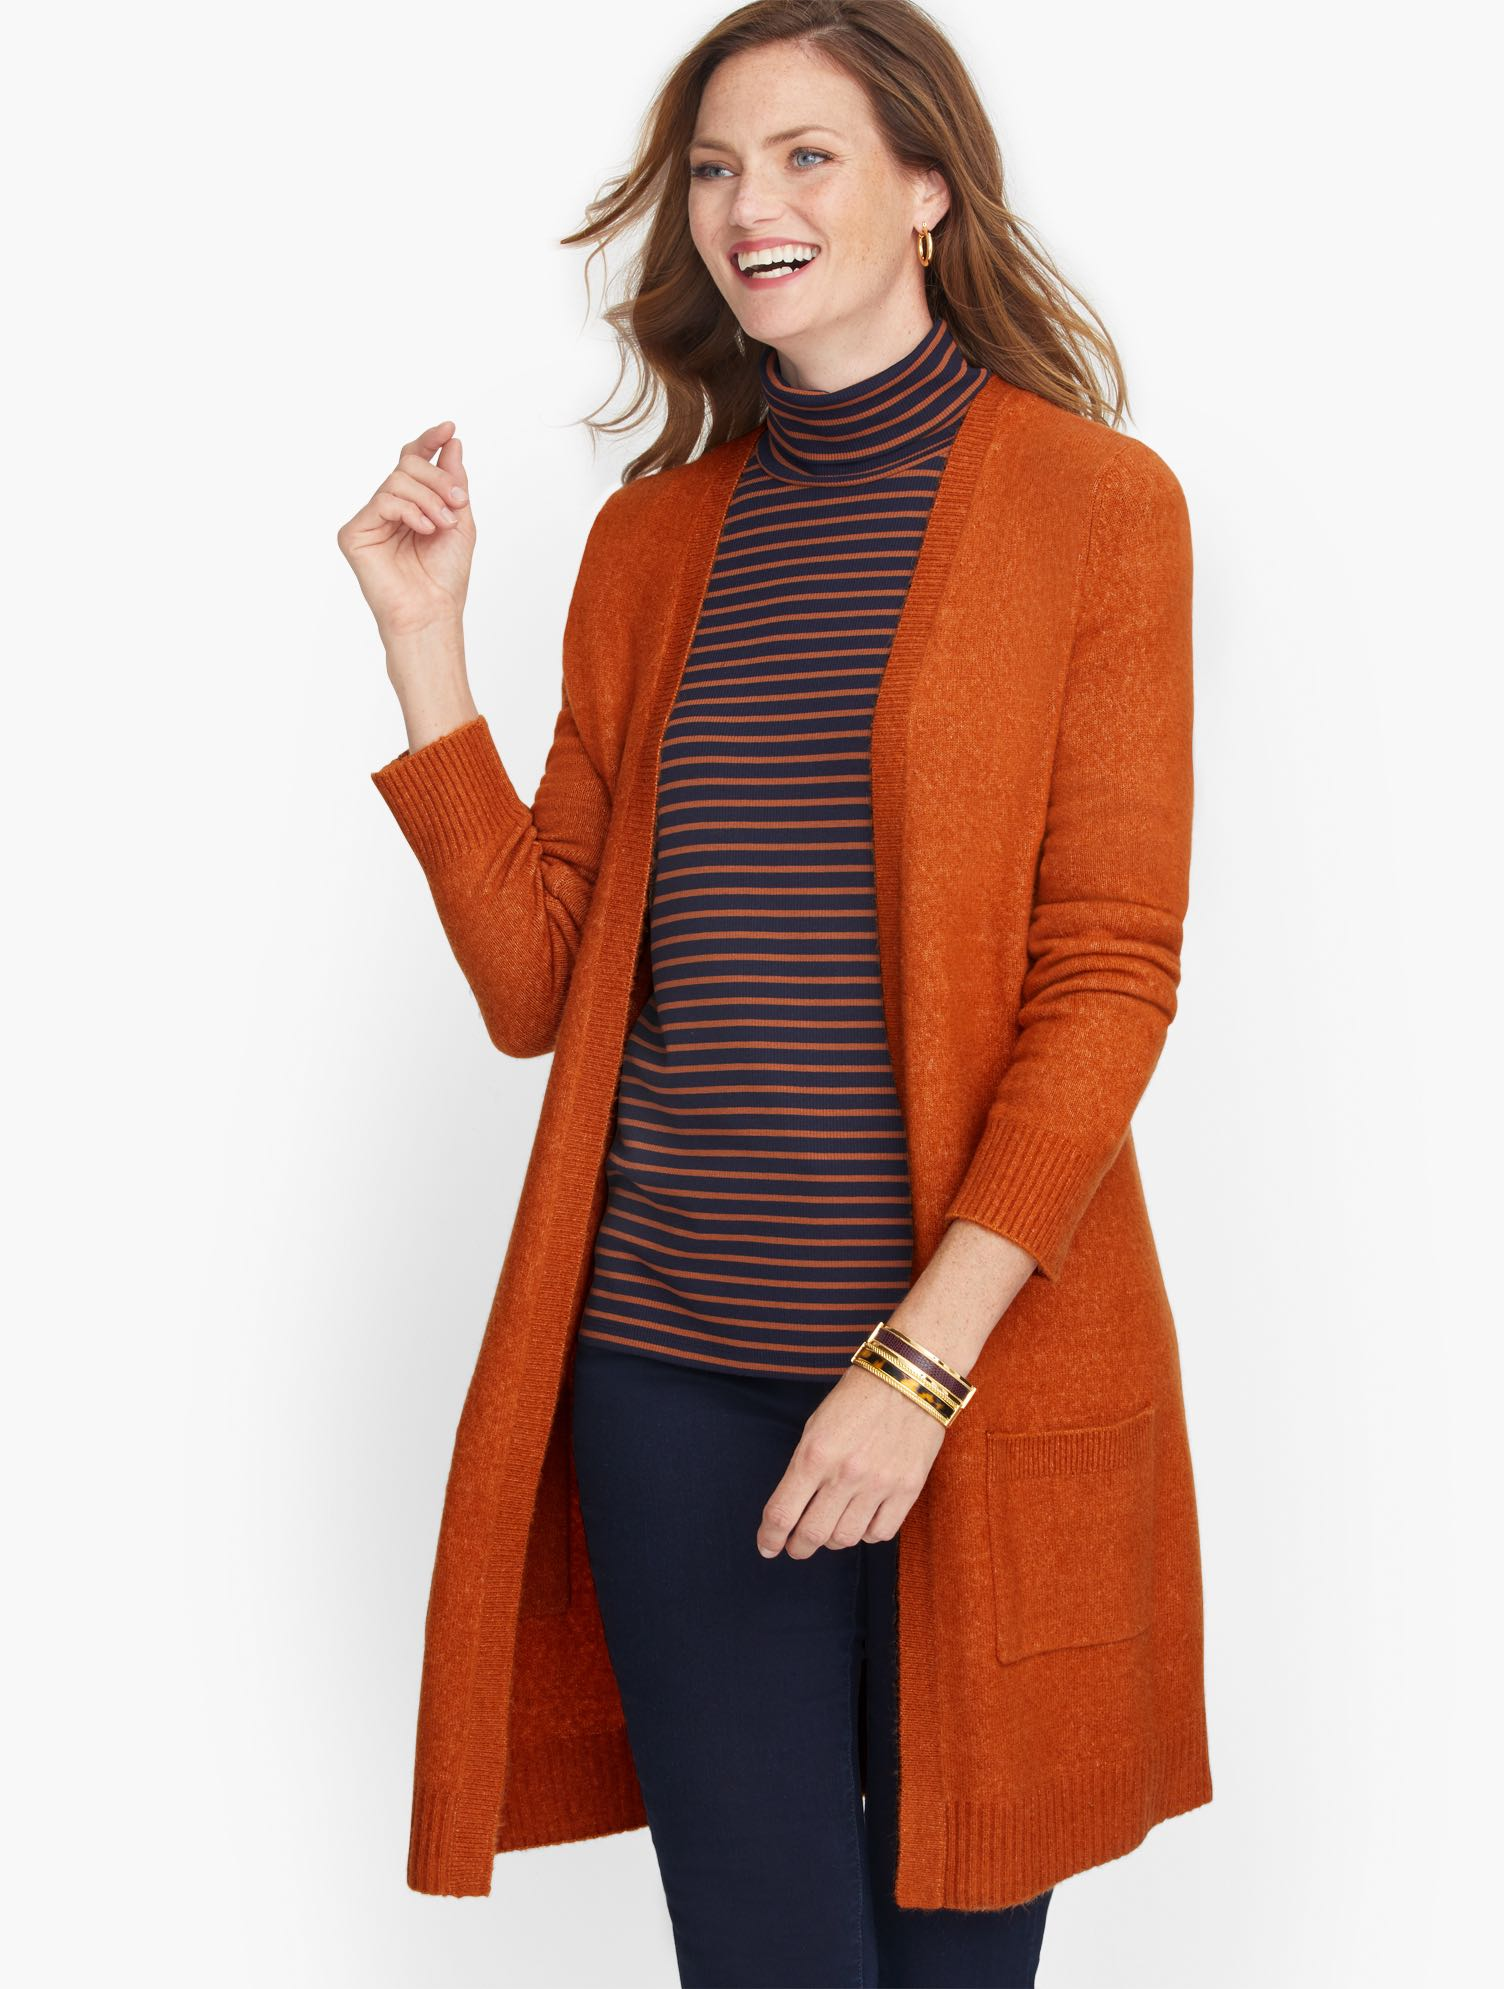 Our longer cardigan, AKA the third piece. With pockets where you want them. Light and airy, it\\\'s the perfect layer with jeans and a tee. Features Neckline: No Close Sleeve length: Long Hits: Below hip Closure: No Close Pockets: Patch Imported Fit: Misses: 33 inches; Petite: 30 1/2 inches, Plus: 33 1/2 inches Material: 44% Acrylic, 35% Nylon, 7% Wool, 7% Alpaca, 7% Spandex Care: Hand Wash; Reshape, lay flat to dry Flyaway Cardigan Sweater - Rich Spice - XL Talbots